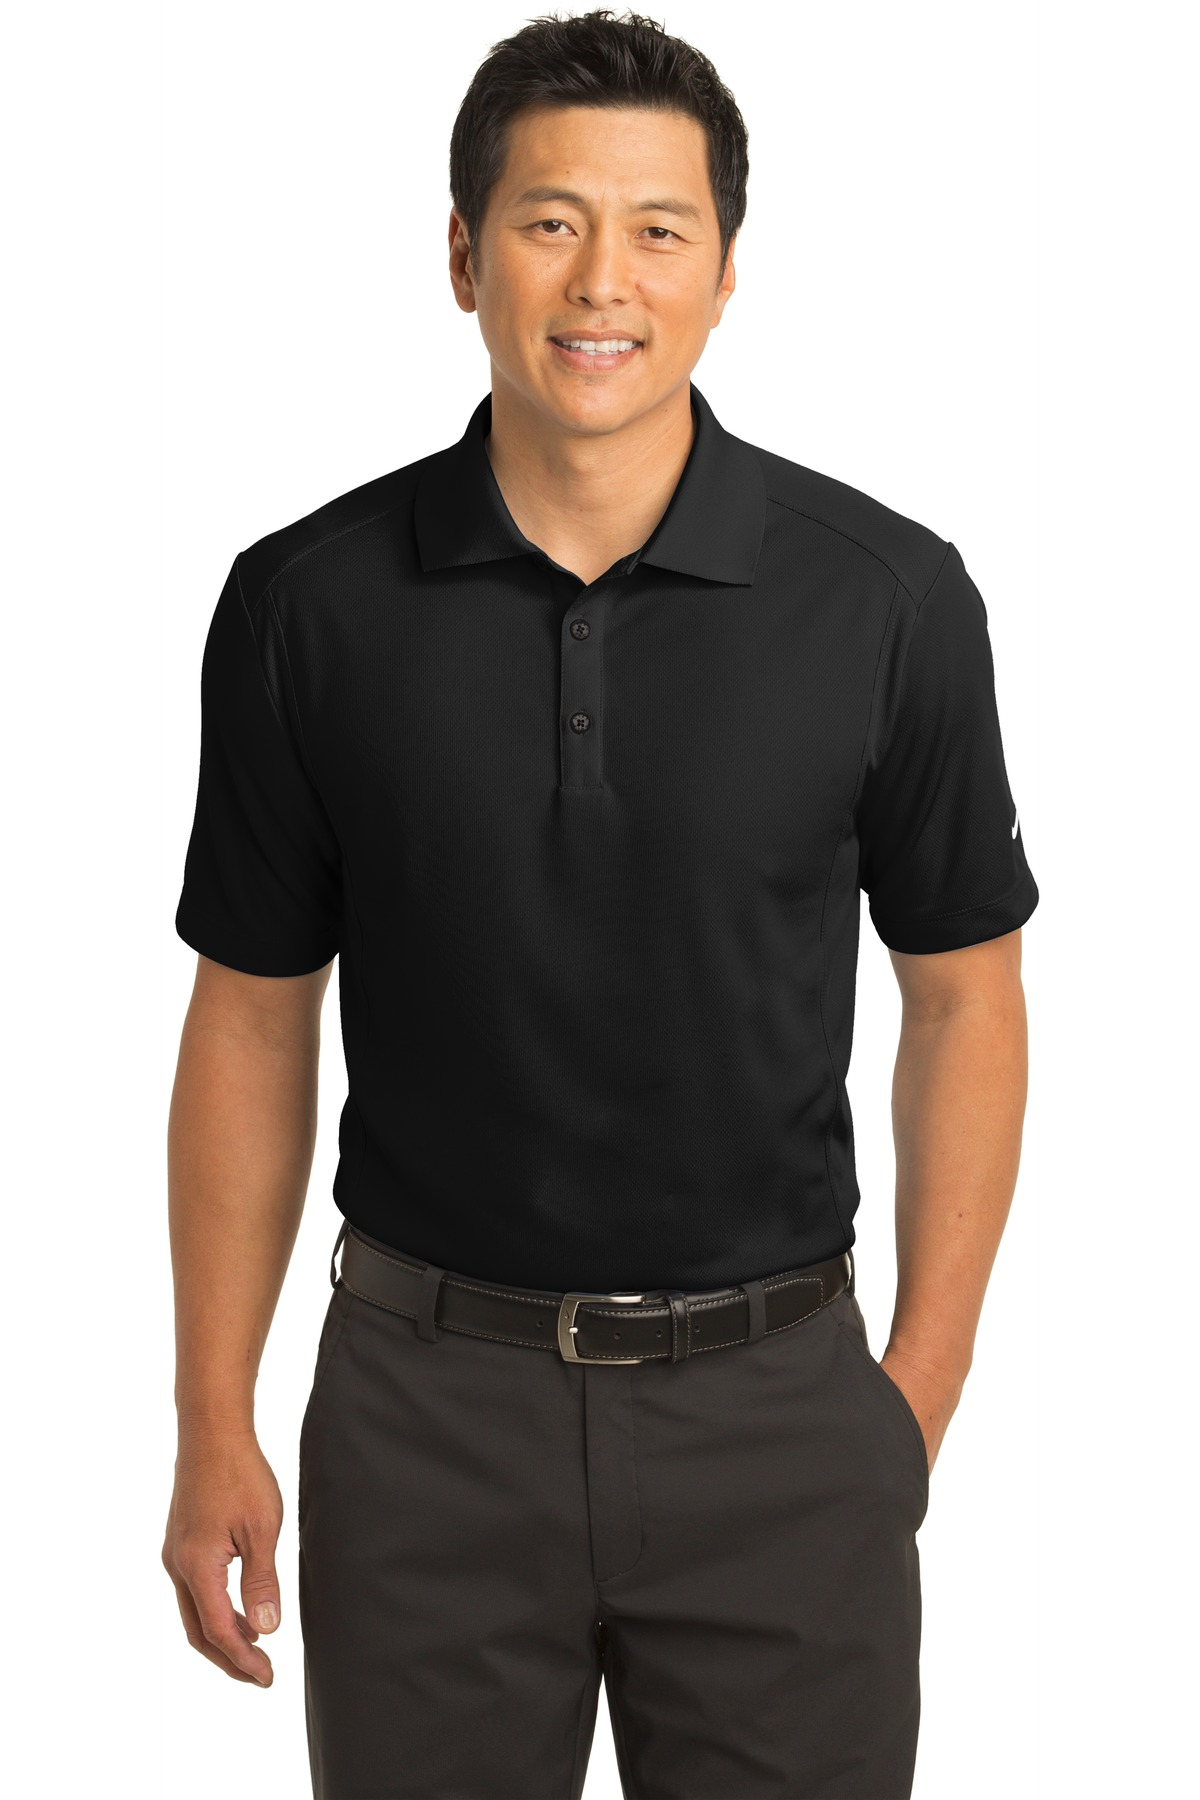 Nike Dri-FIT Classic Polo.  267020 - Black